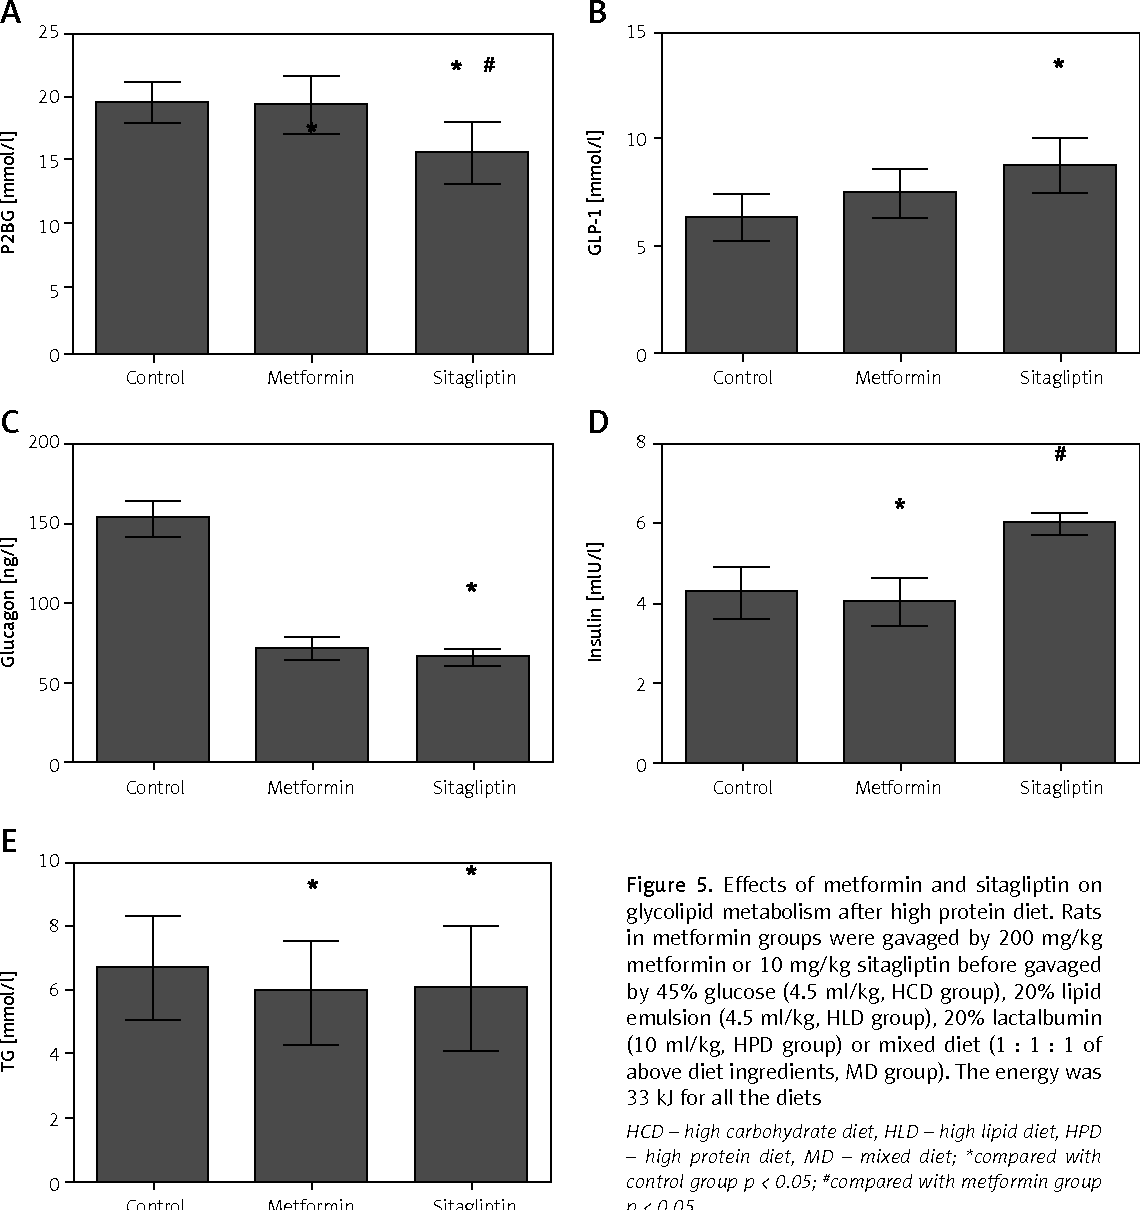 Figure 5. Effects of metformin and sitagliptin on glycolipid metabolism after high protein diet. Rats in metformin groups were gavaged by 200 mg/kg metformin or 10mg/kg sitagliptin before gavaged by 45% glucose (4.5ml/kg, HCD group), 20% lipid emulsion (4.5ml/kg, HLD group), 20% lactalbumin (10ml/kg, HPD group) or mixed diet (1 : 1 : 1 of above diet ingredients, MD group). The energy was 33 kJ for all the diets